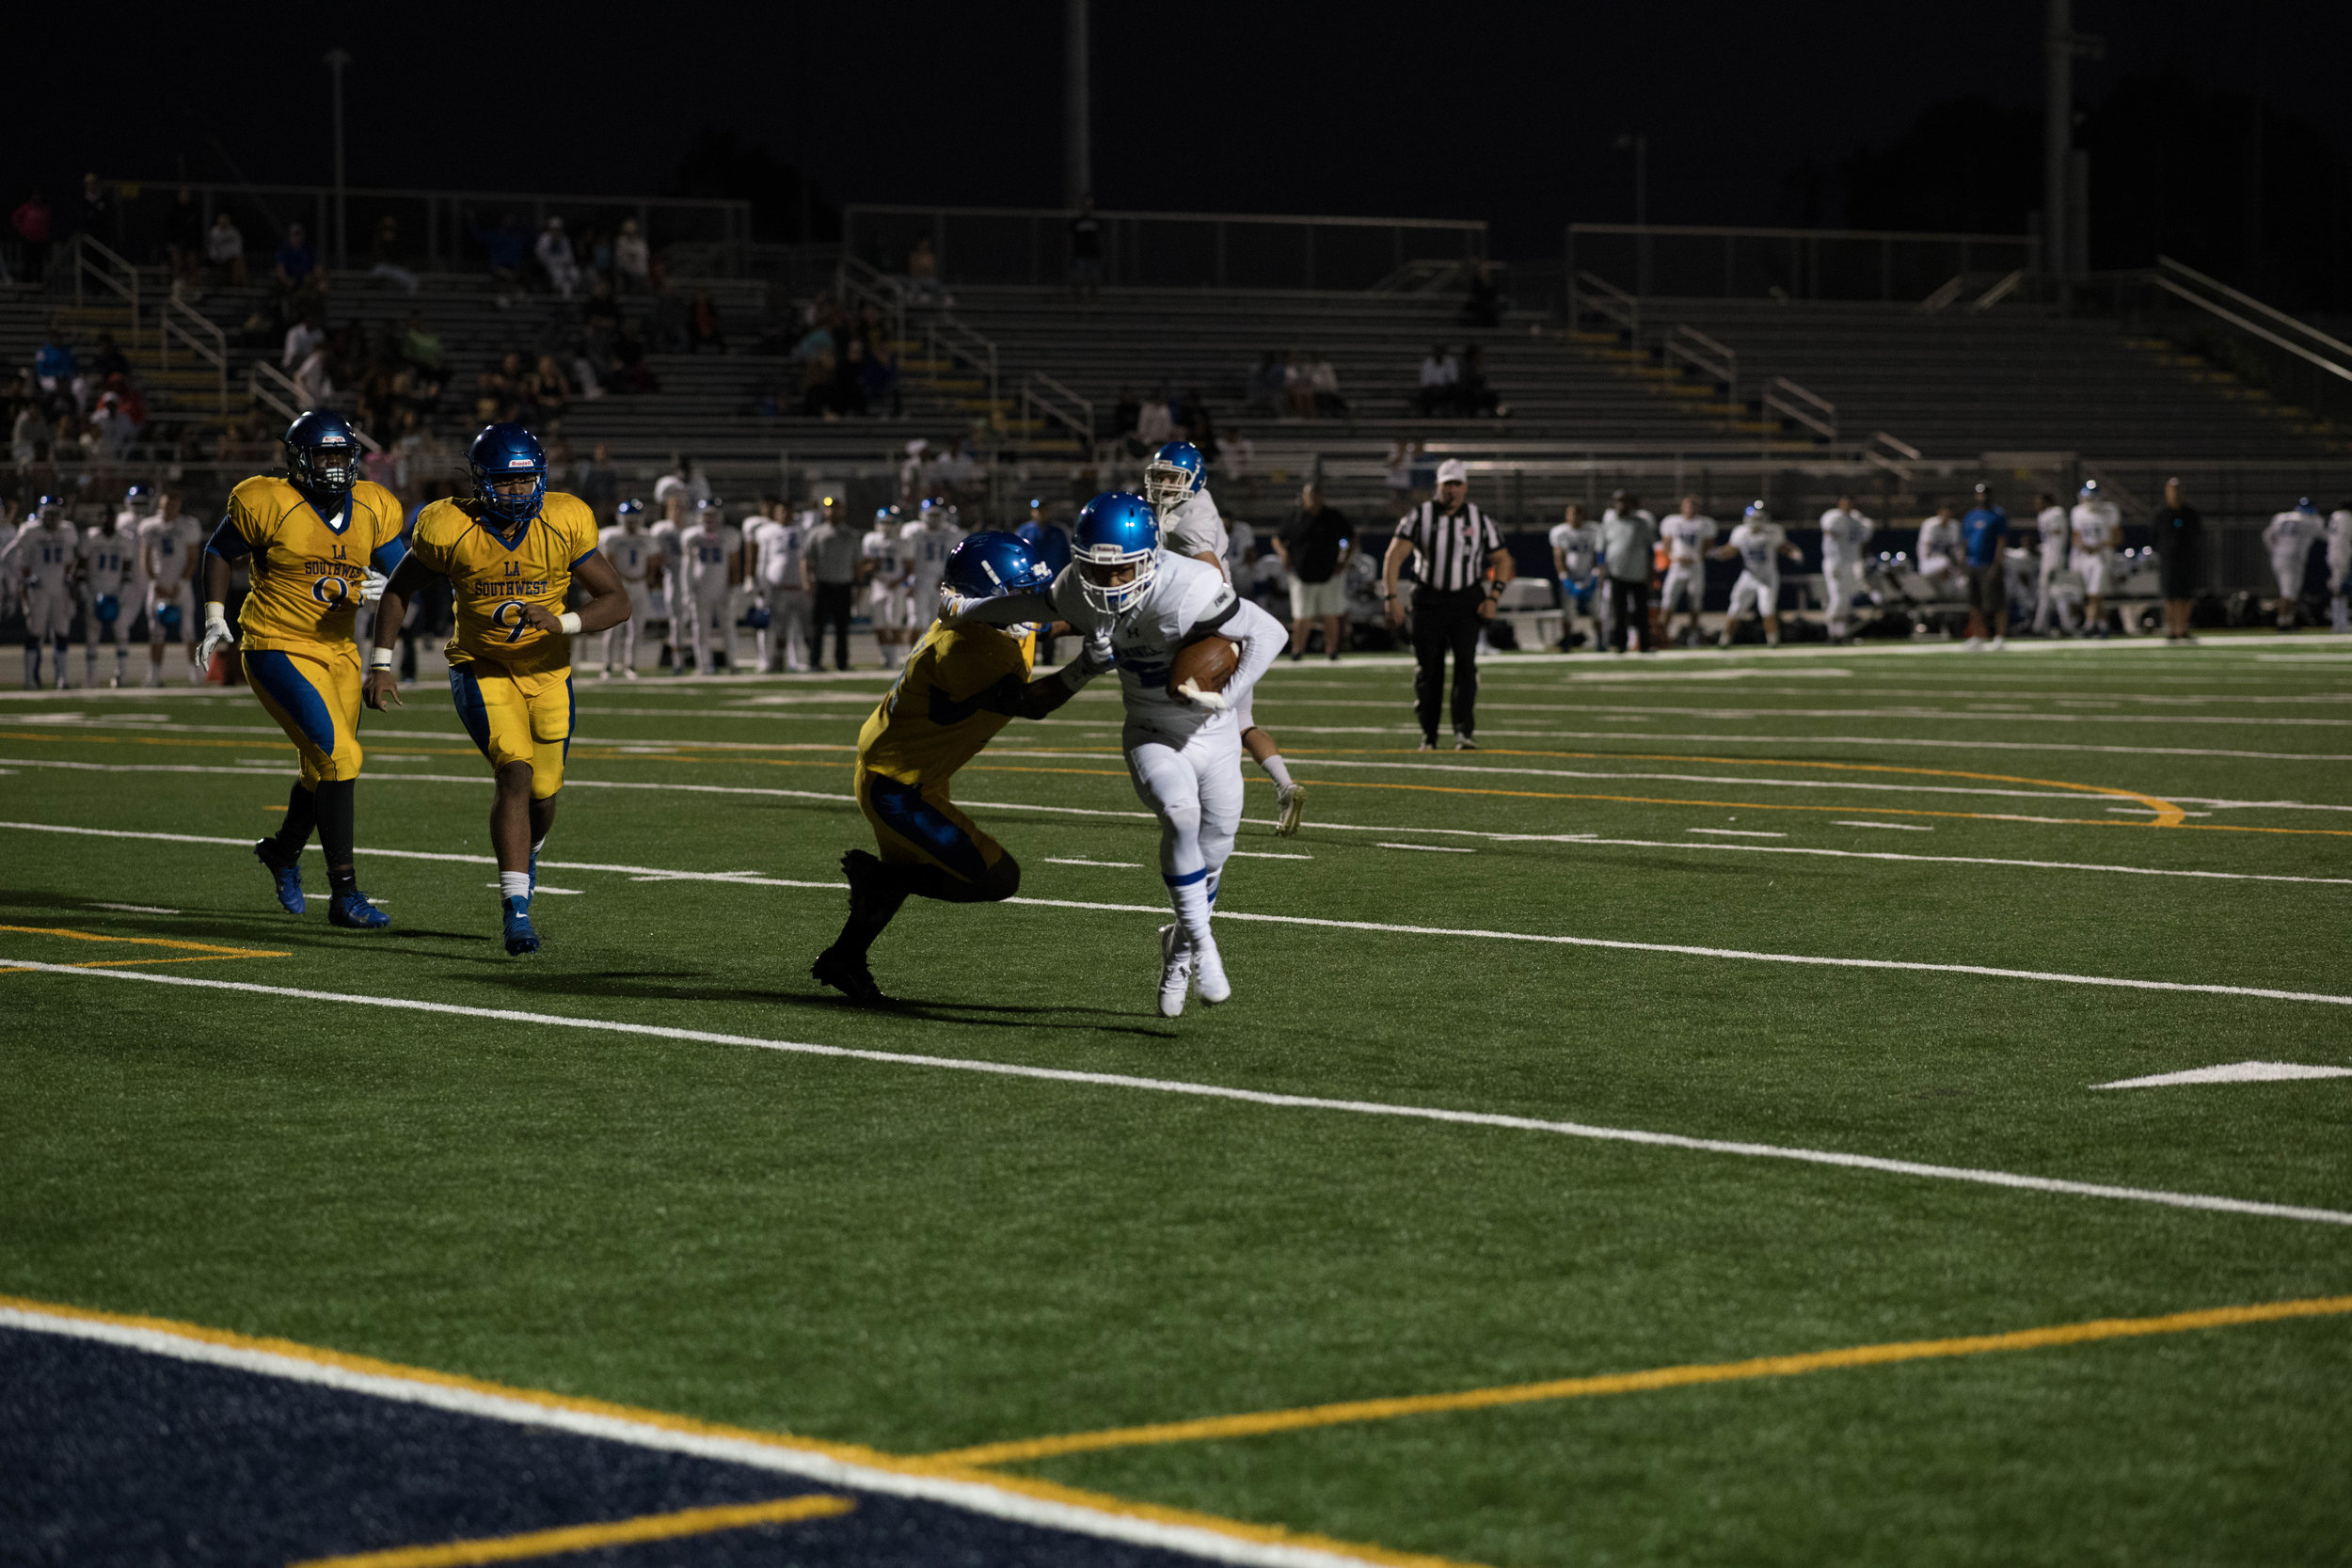 #2 Melvin Hicks sheds off a tackle from a Southwest defender as he makes his way to a touchdown.(Photo by Kevin Tidmore/The Corsair)